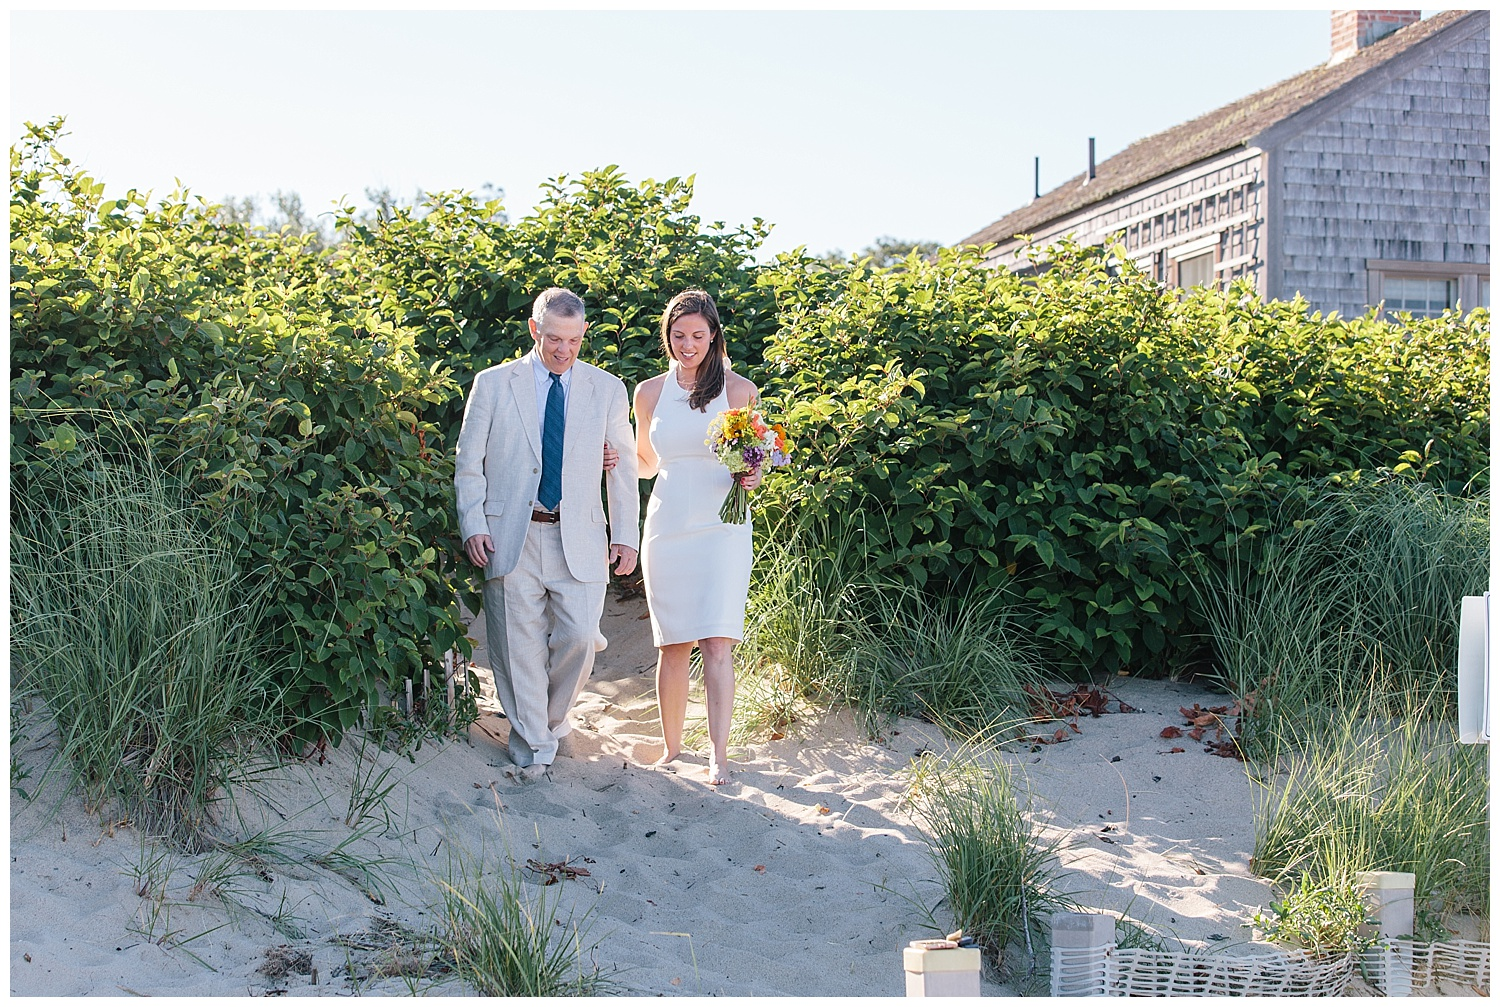 emily-belson-photography-nantucket-elopement-09.jpg